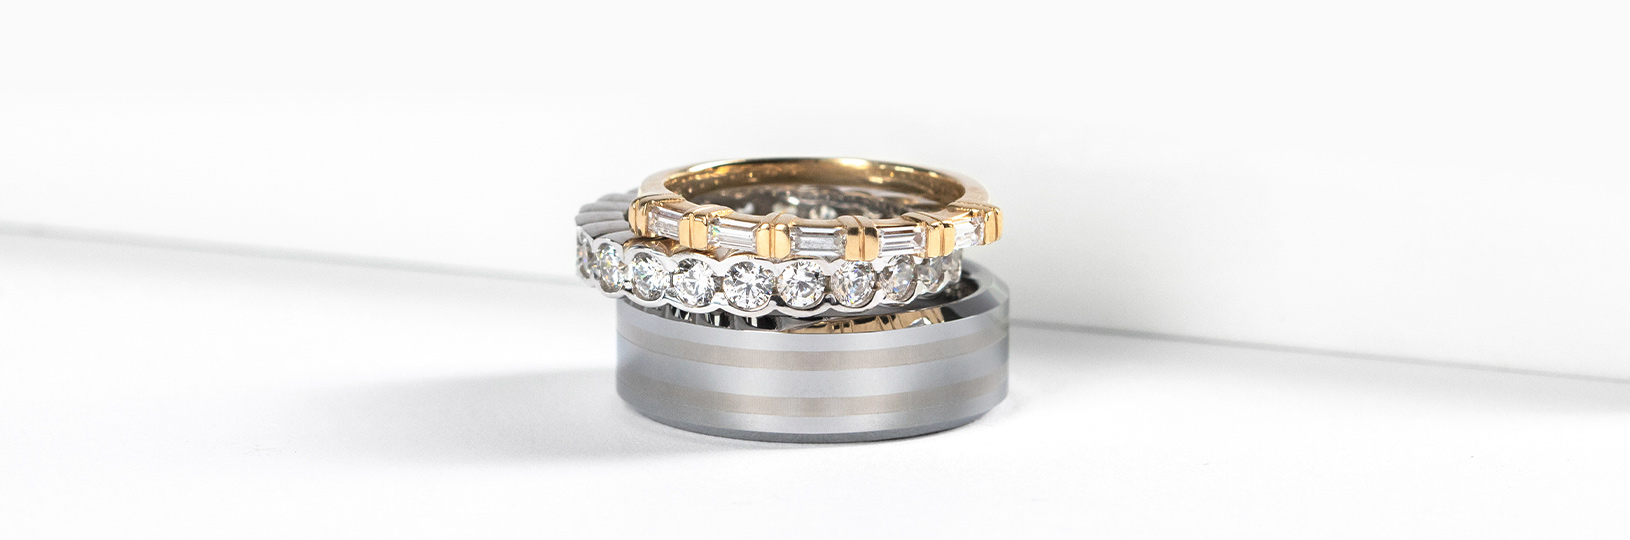 Three wedding bands stacked side by side